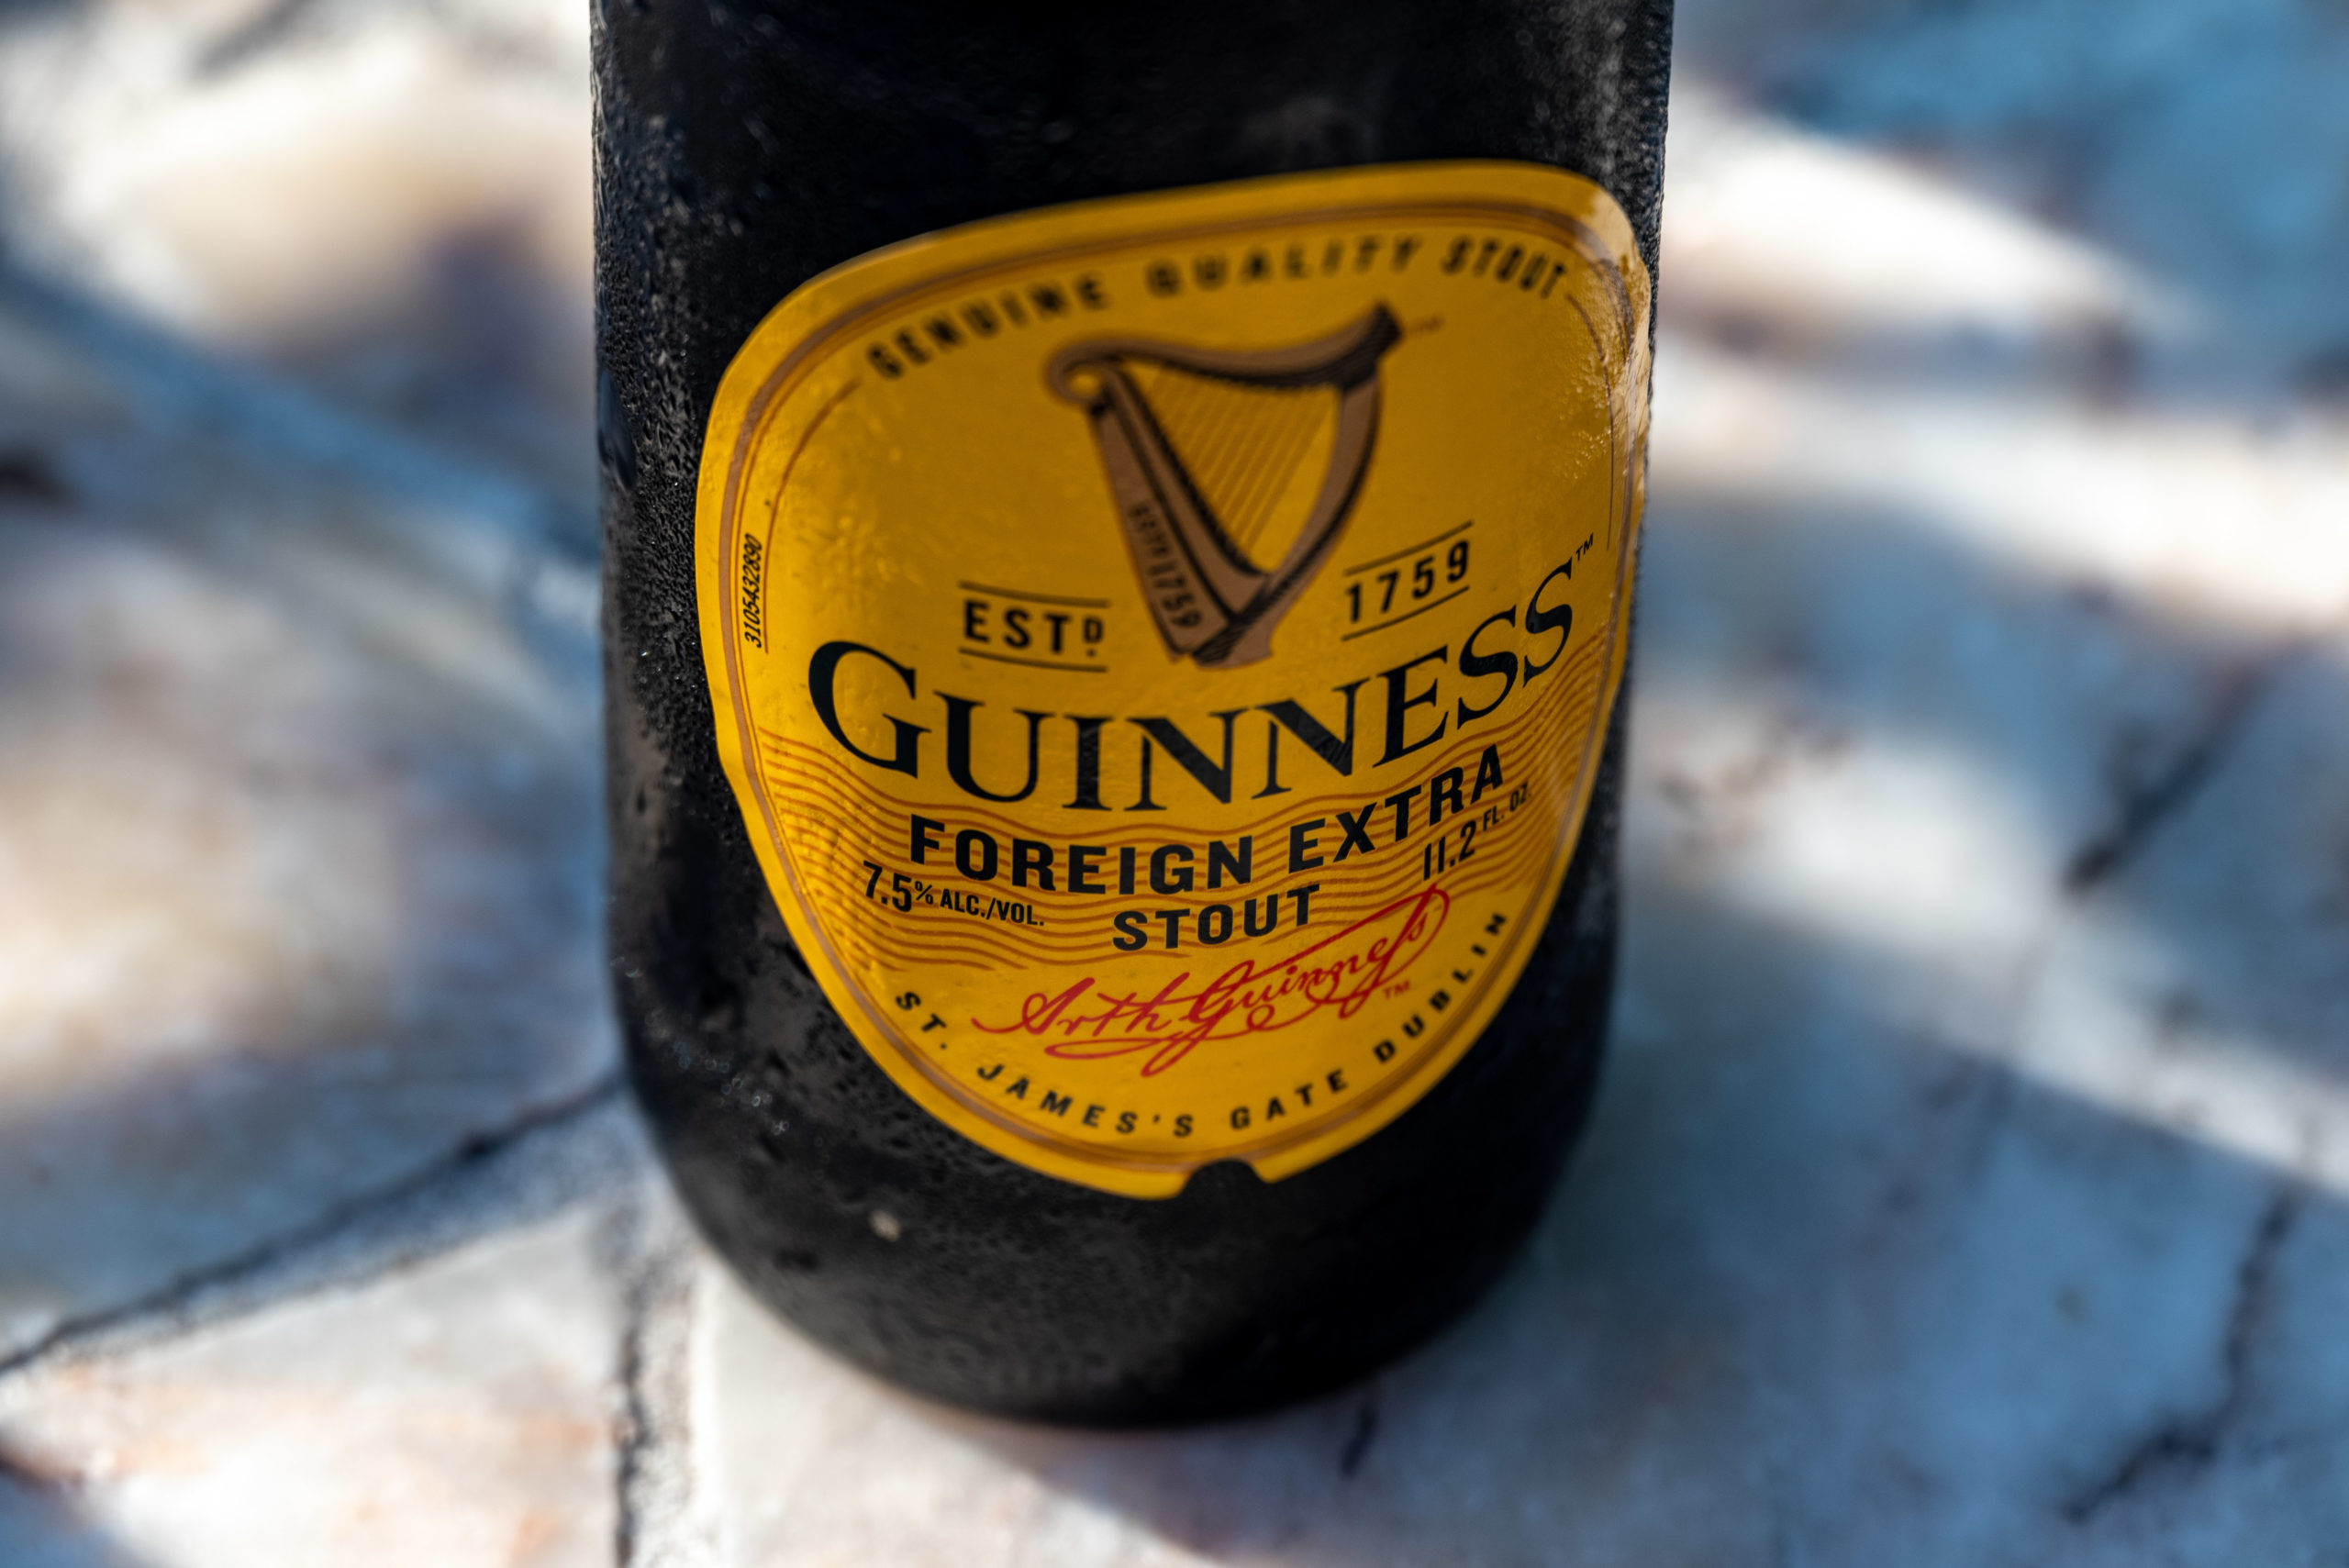 Guinness Foreign Extra Stout label